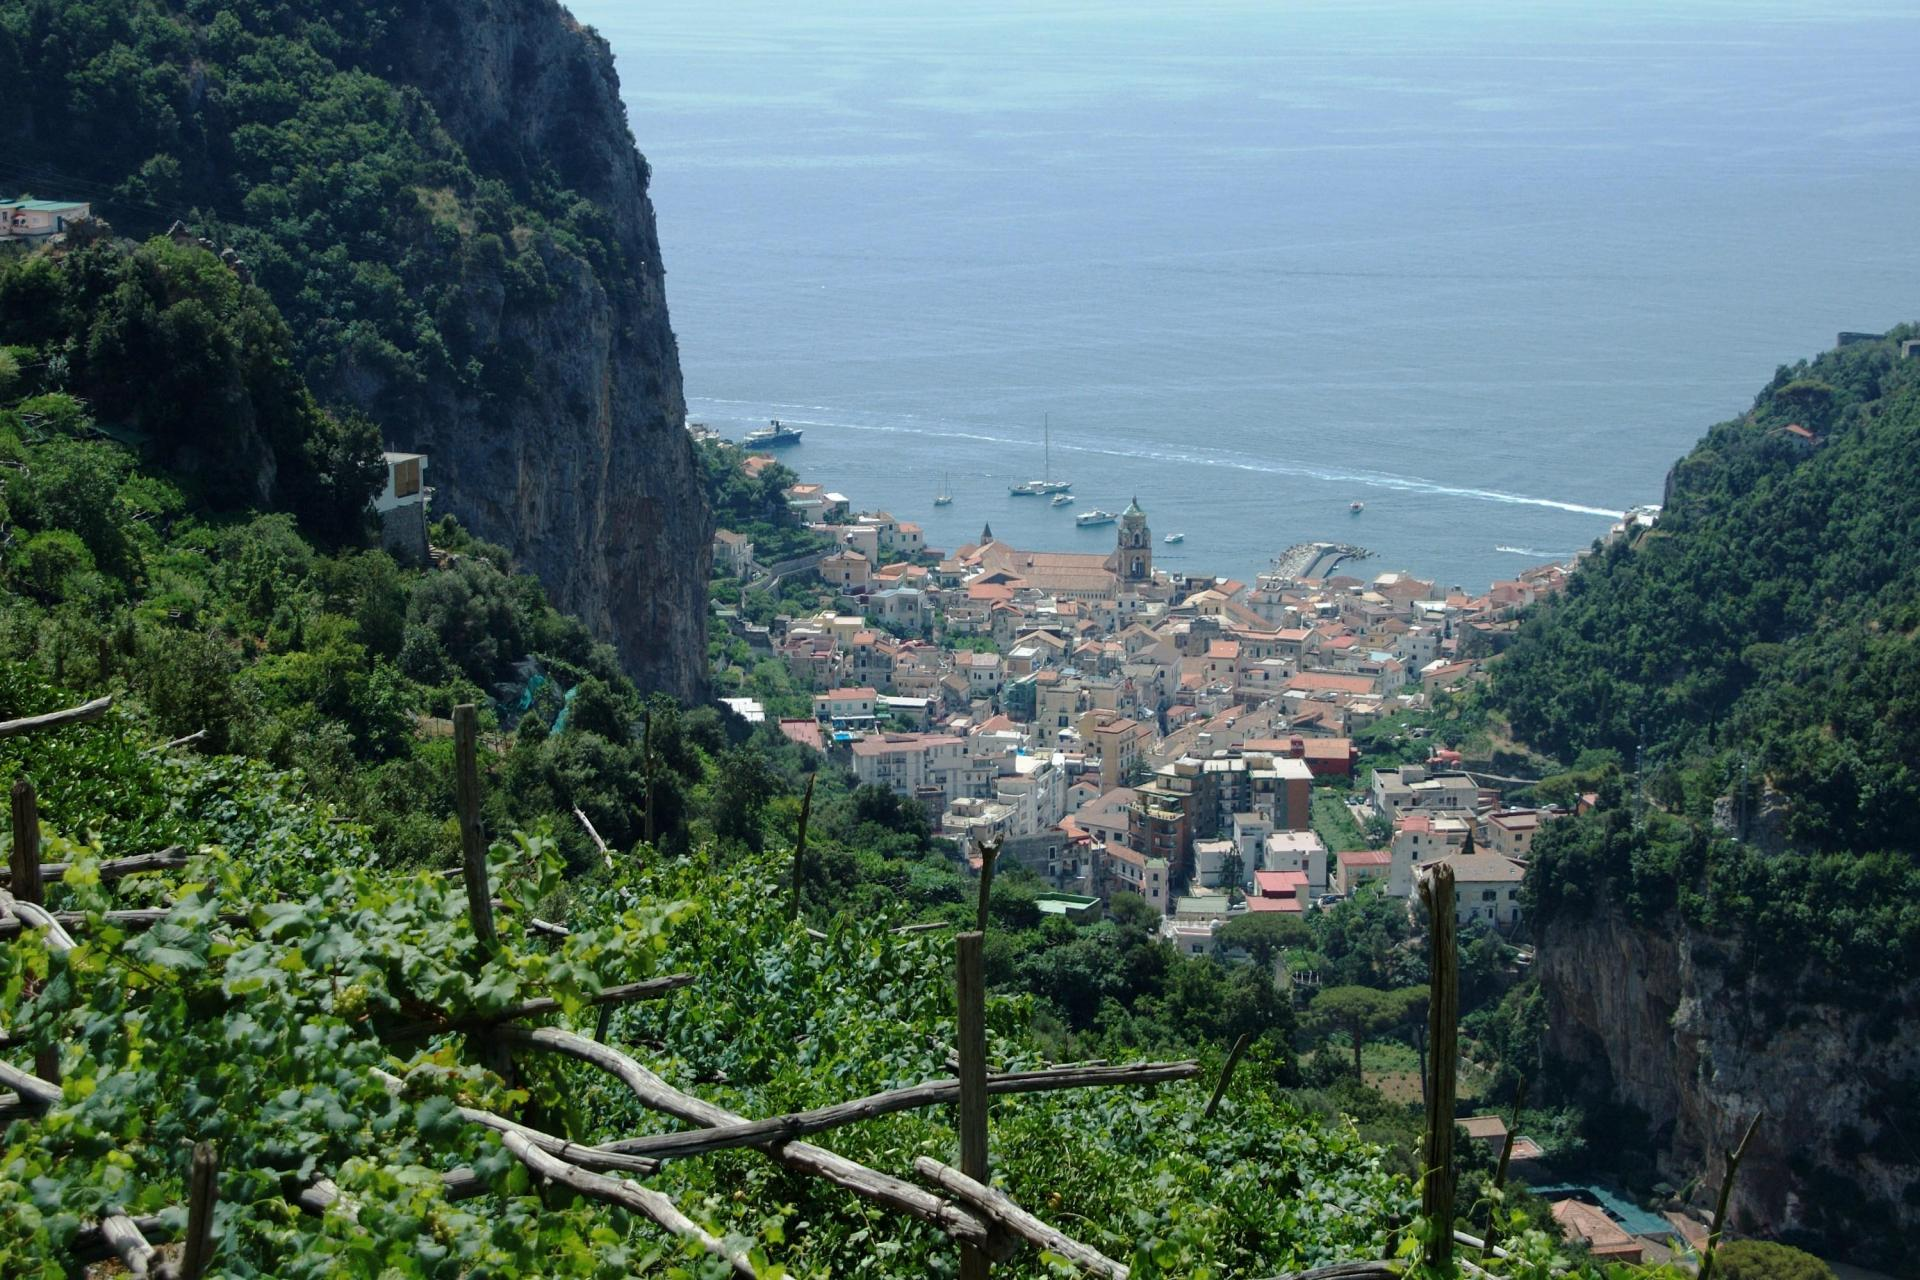 Self-guided Italy - Naples And Amalfi Coast Hiking Tour